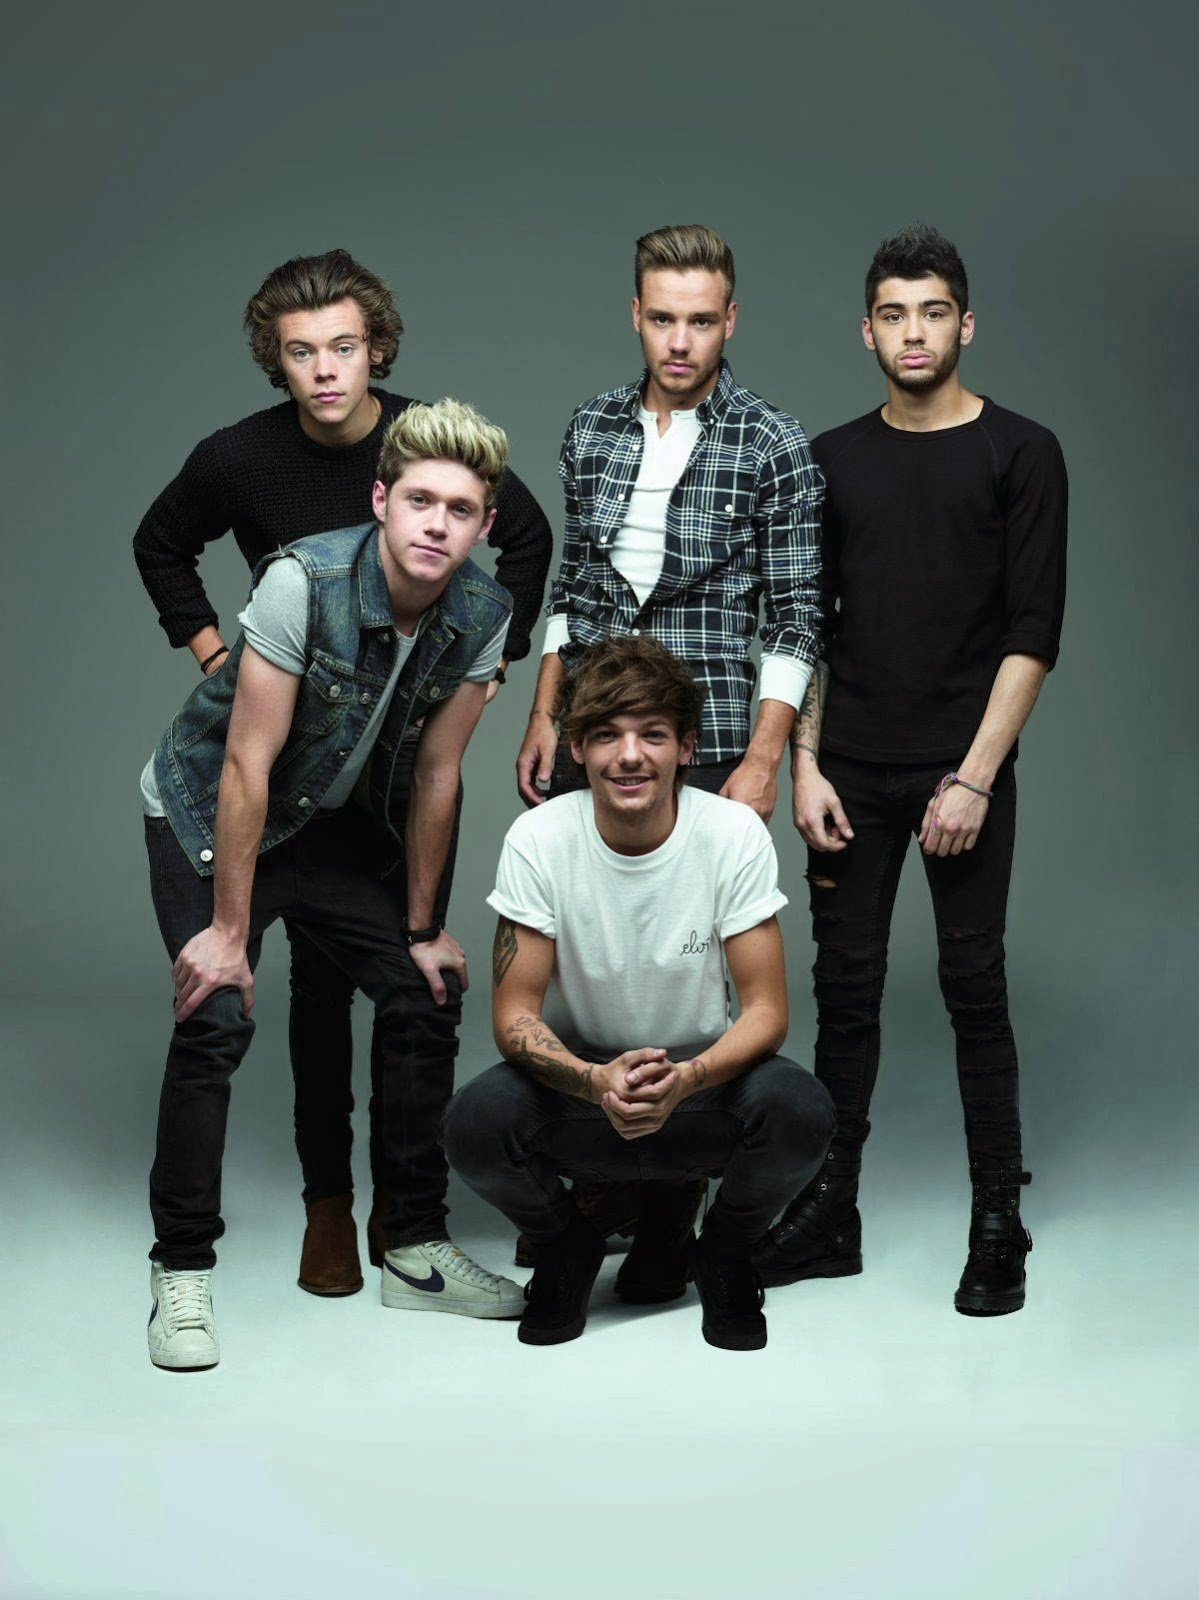 One Direction 2014 Photoshoot One direction s new photoOne Direction Photoshoot 2014